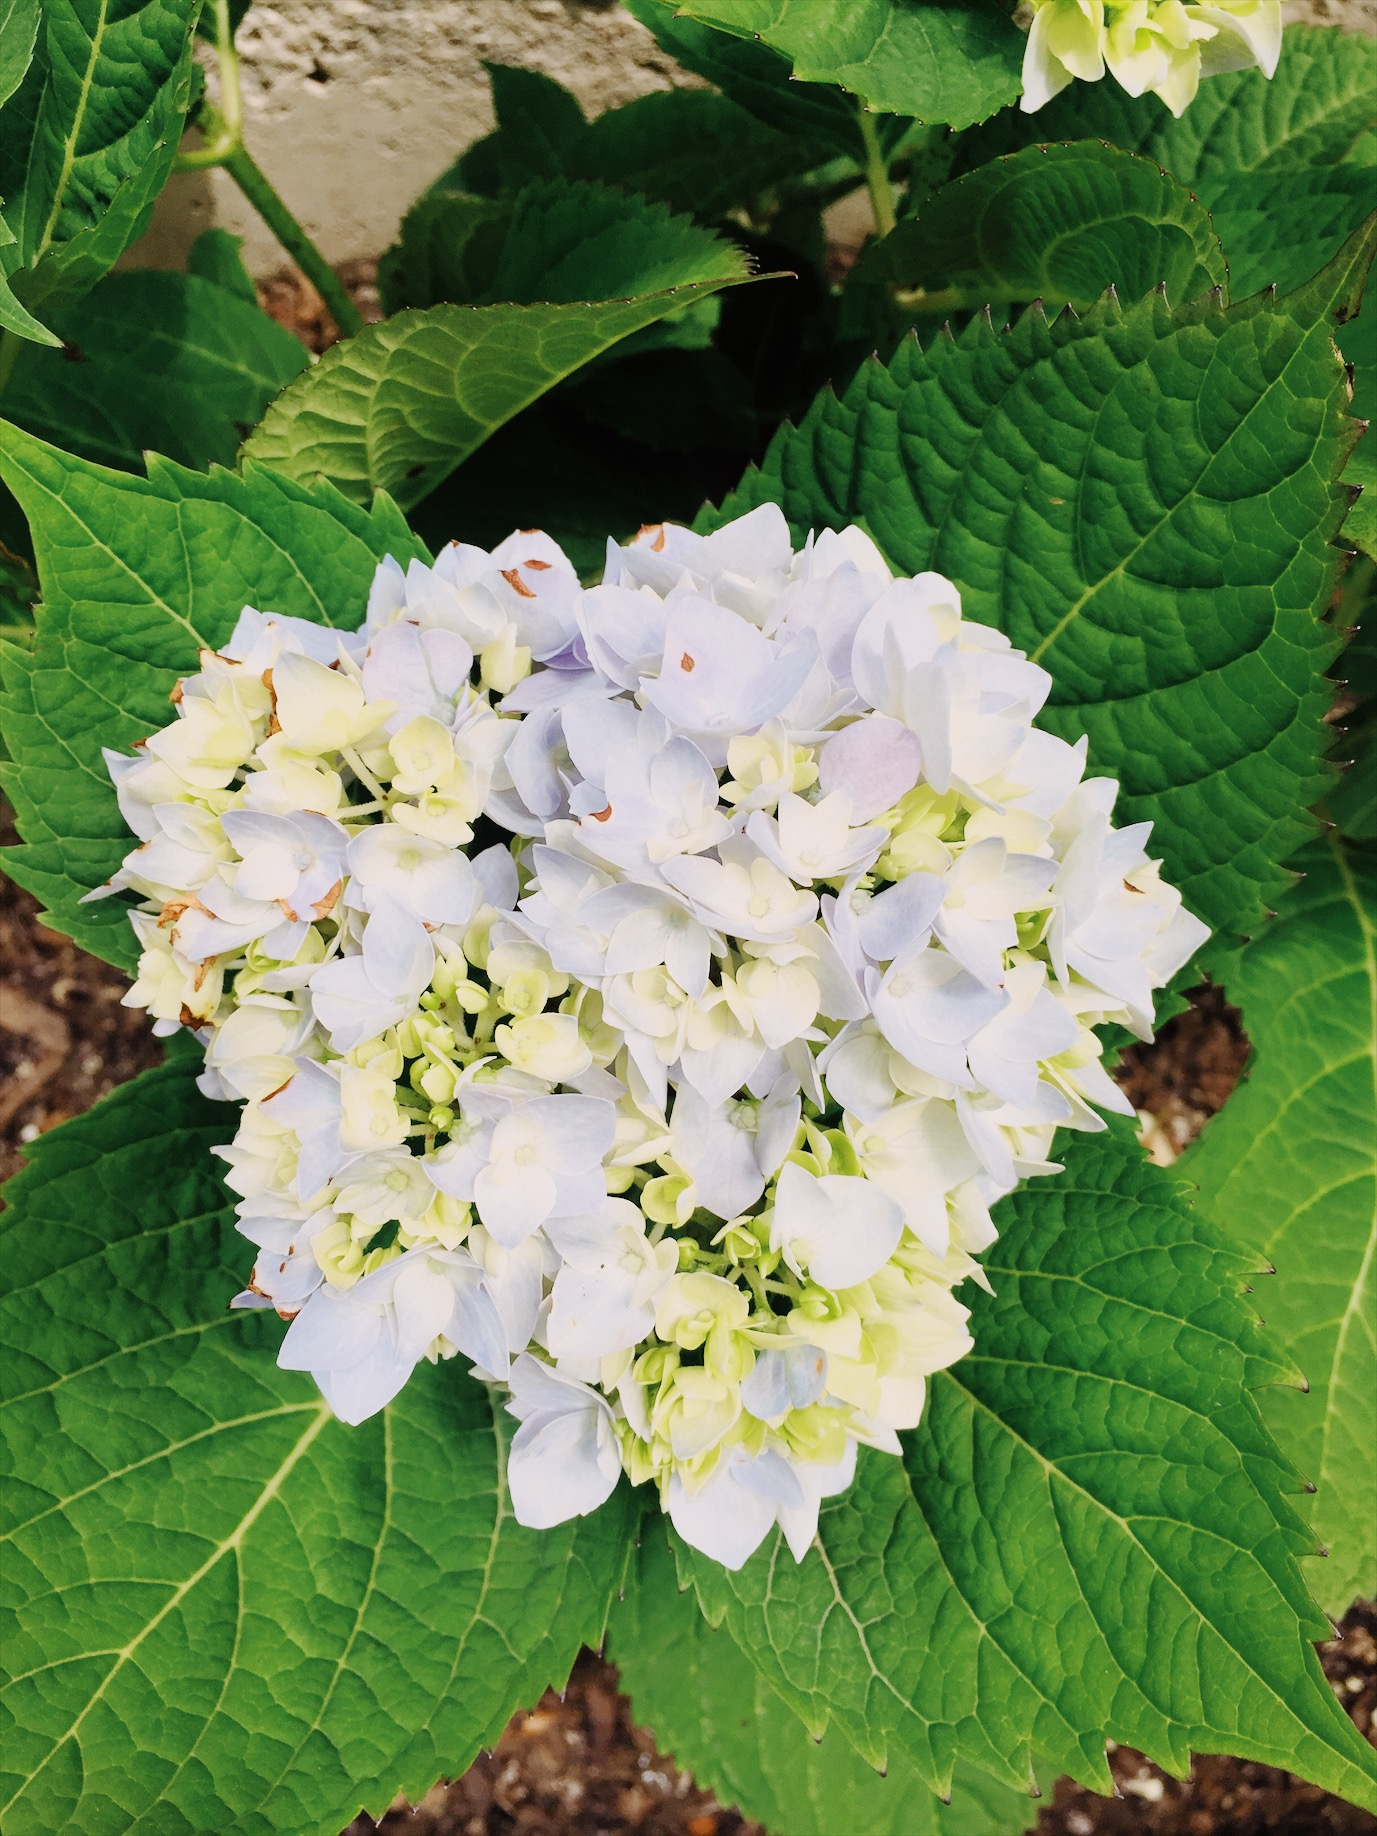 We're checking in on my Spring garden and seeing what's growing, like this blue hydrangea!